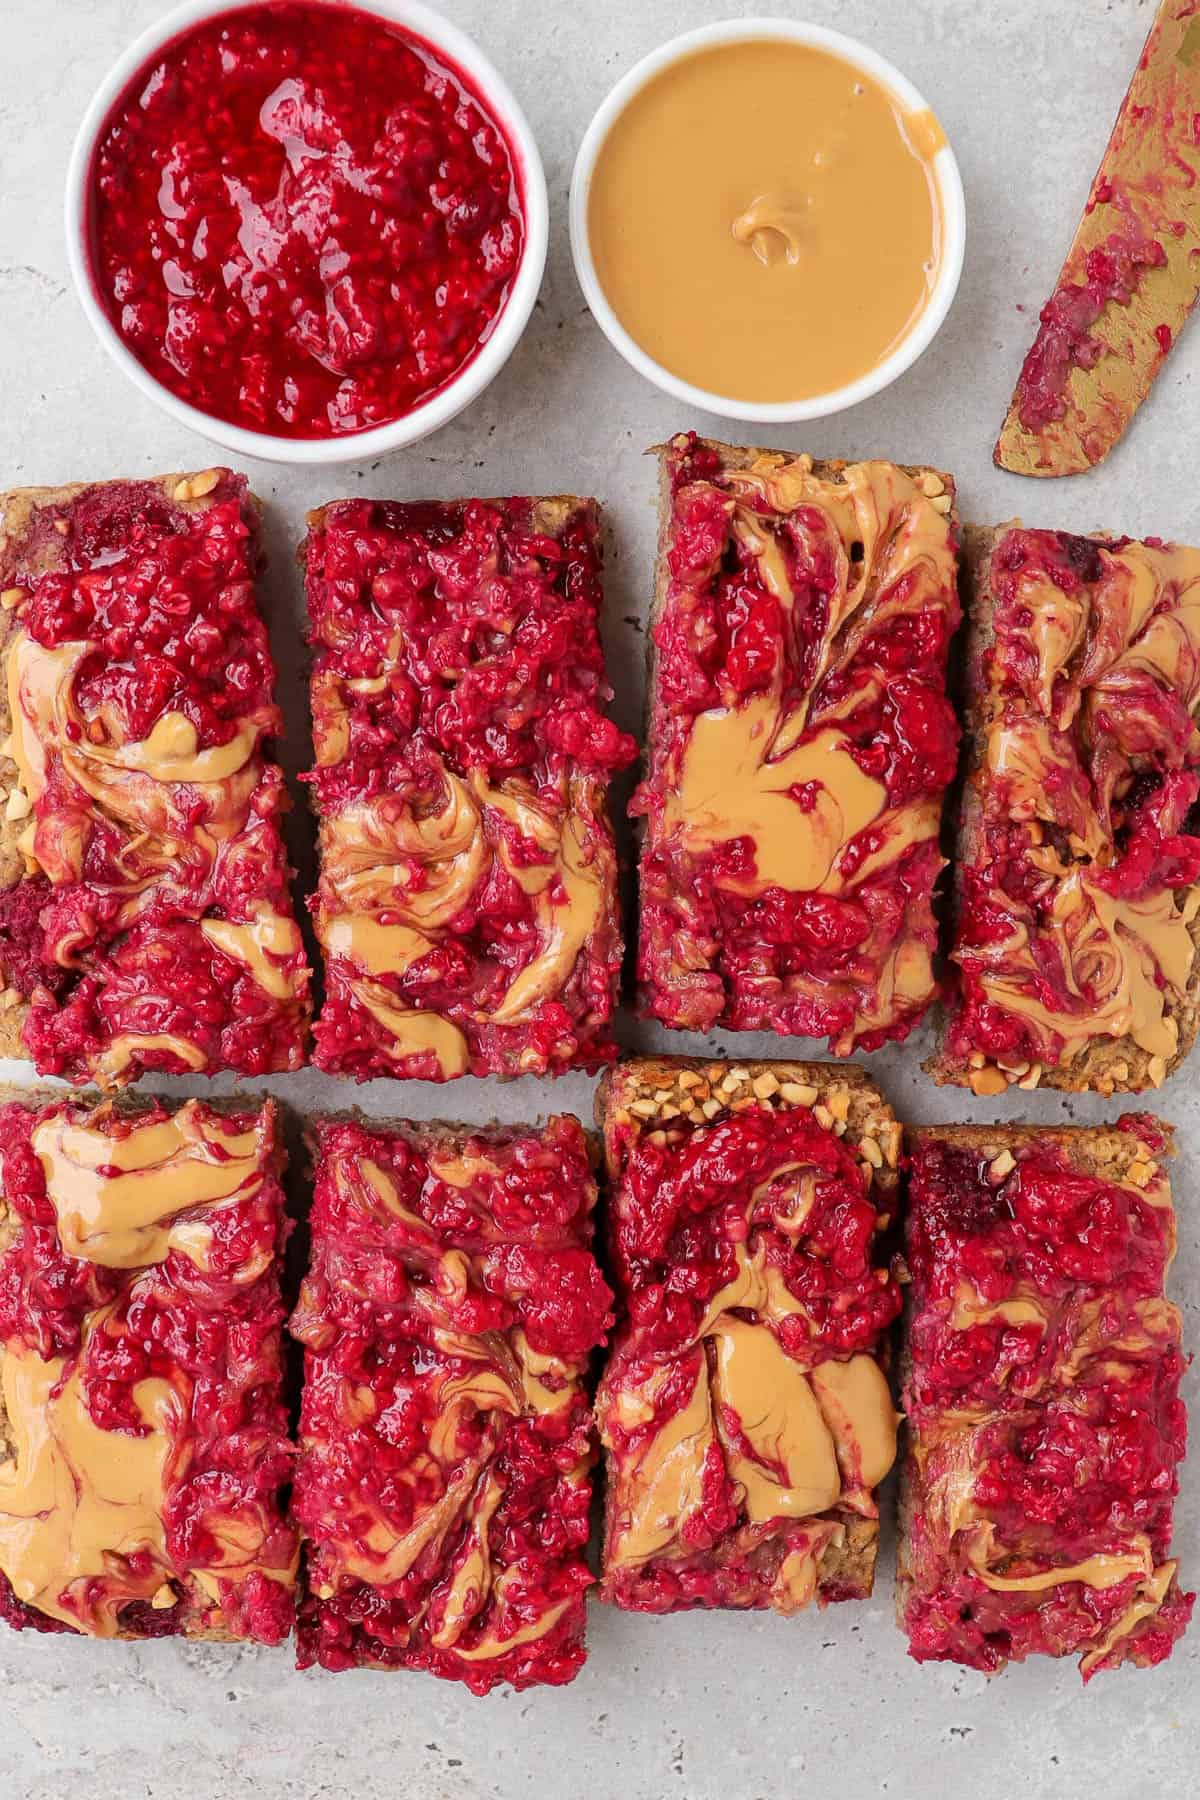 Pb&j oatmeal bars with small dish of peanut butter, mashed raspberries and gold knife above.